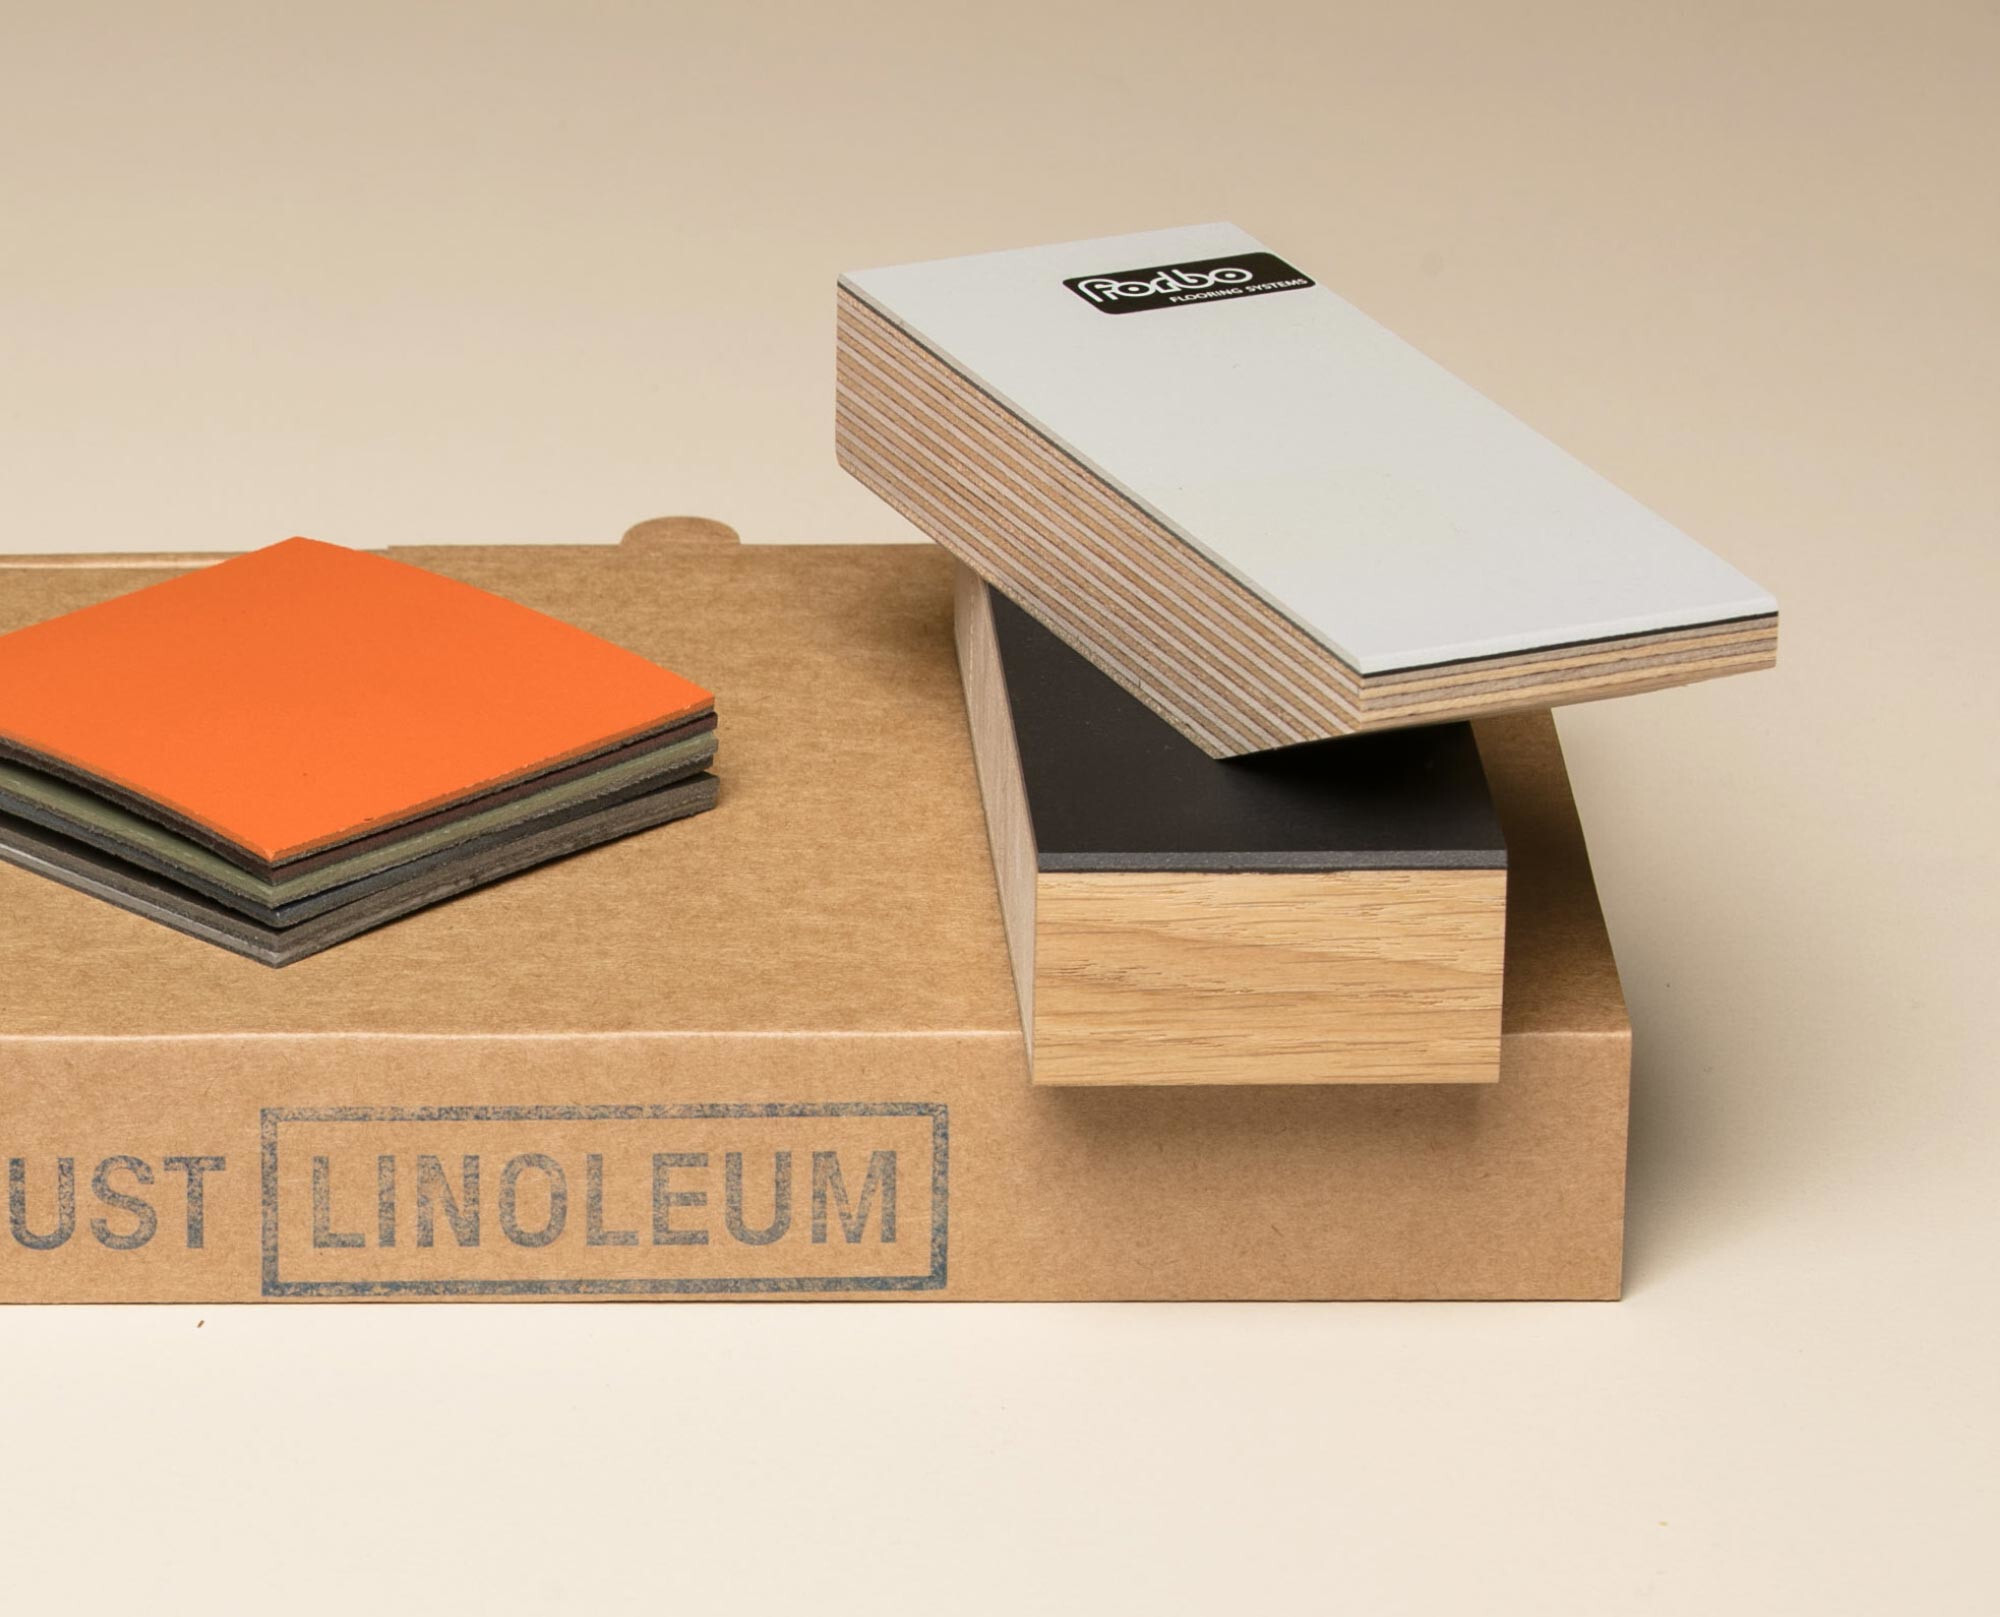 The free linoleum sample set